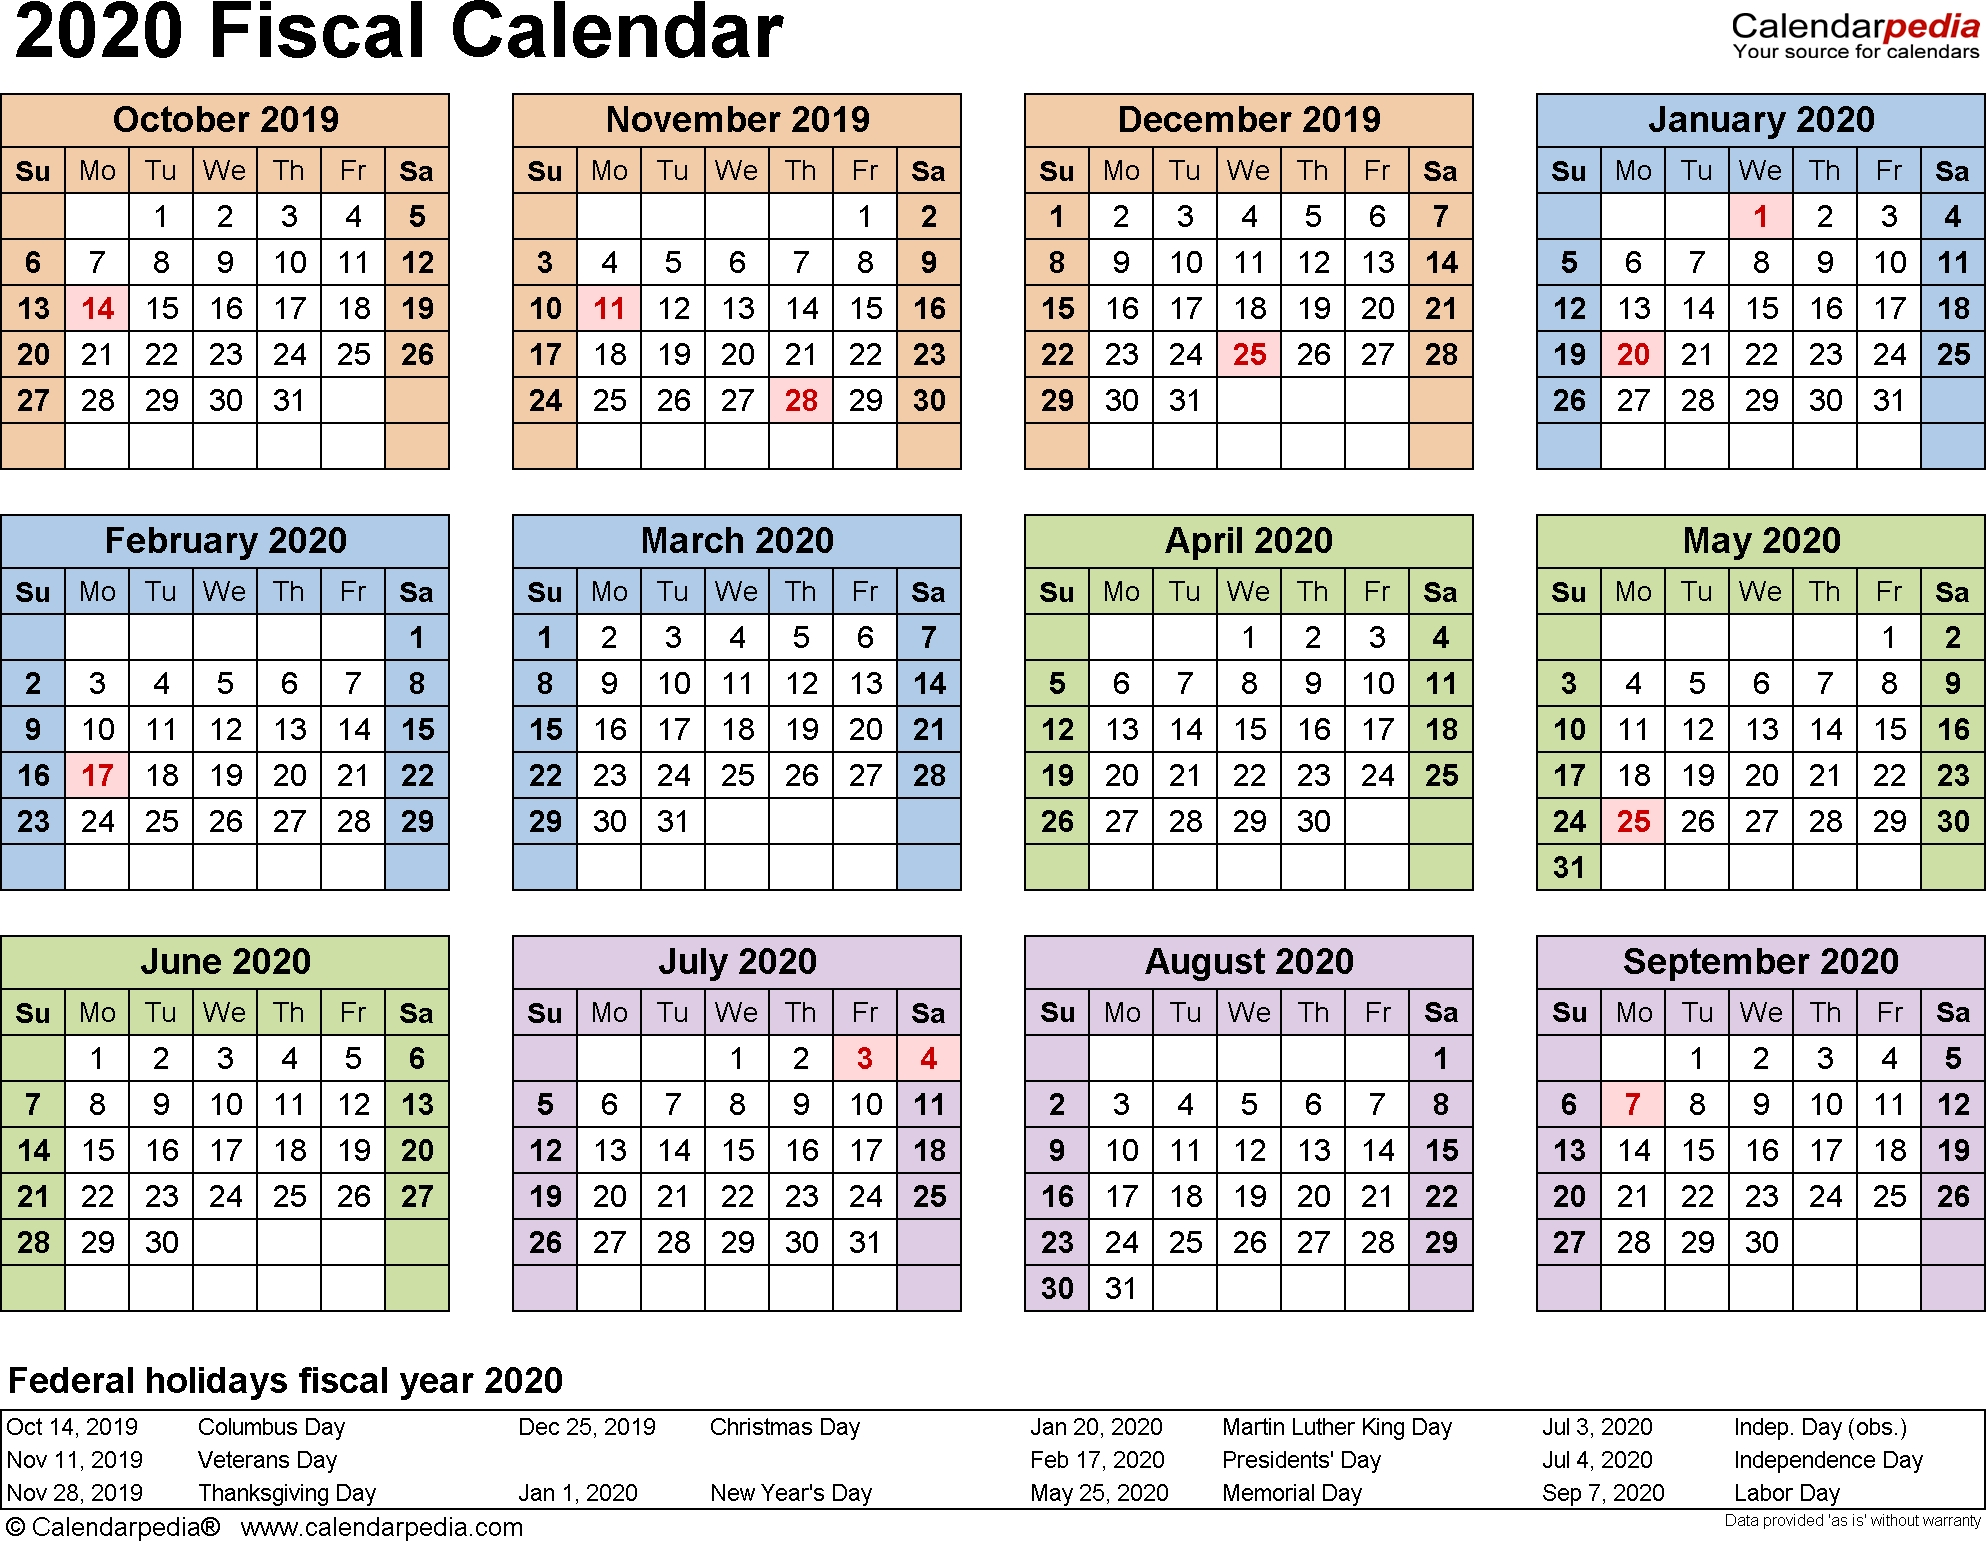 Fiscal Calendars 2020 As Free Printable Excel Templates throughout 2019-2020 Fiscal Calendar 4 4 5